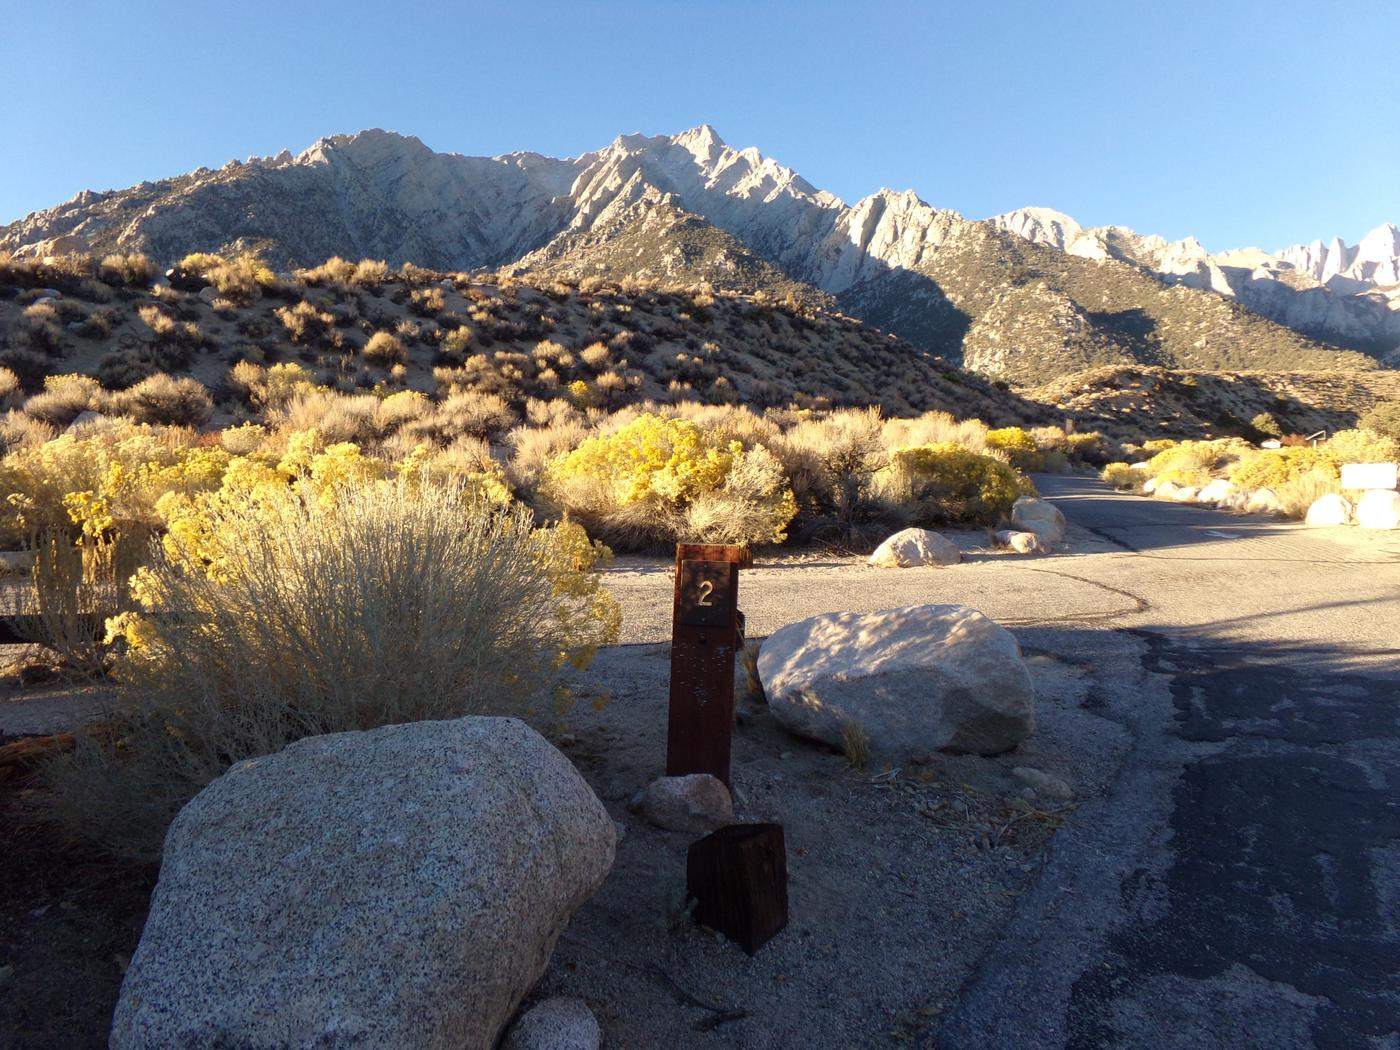 Entrance to site #02 and features the mountain views at Lone Pine Campground.